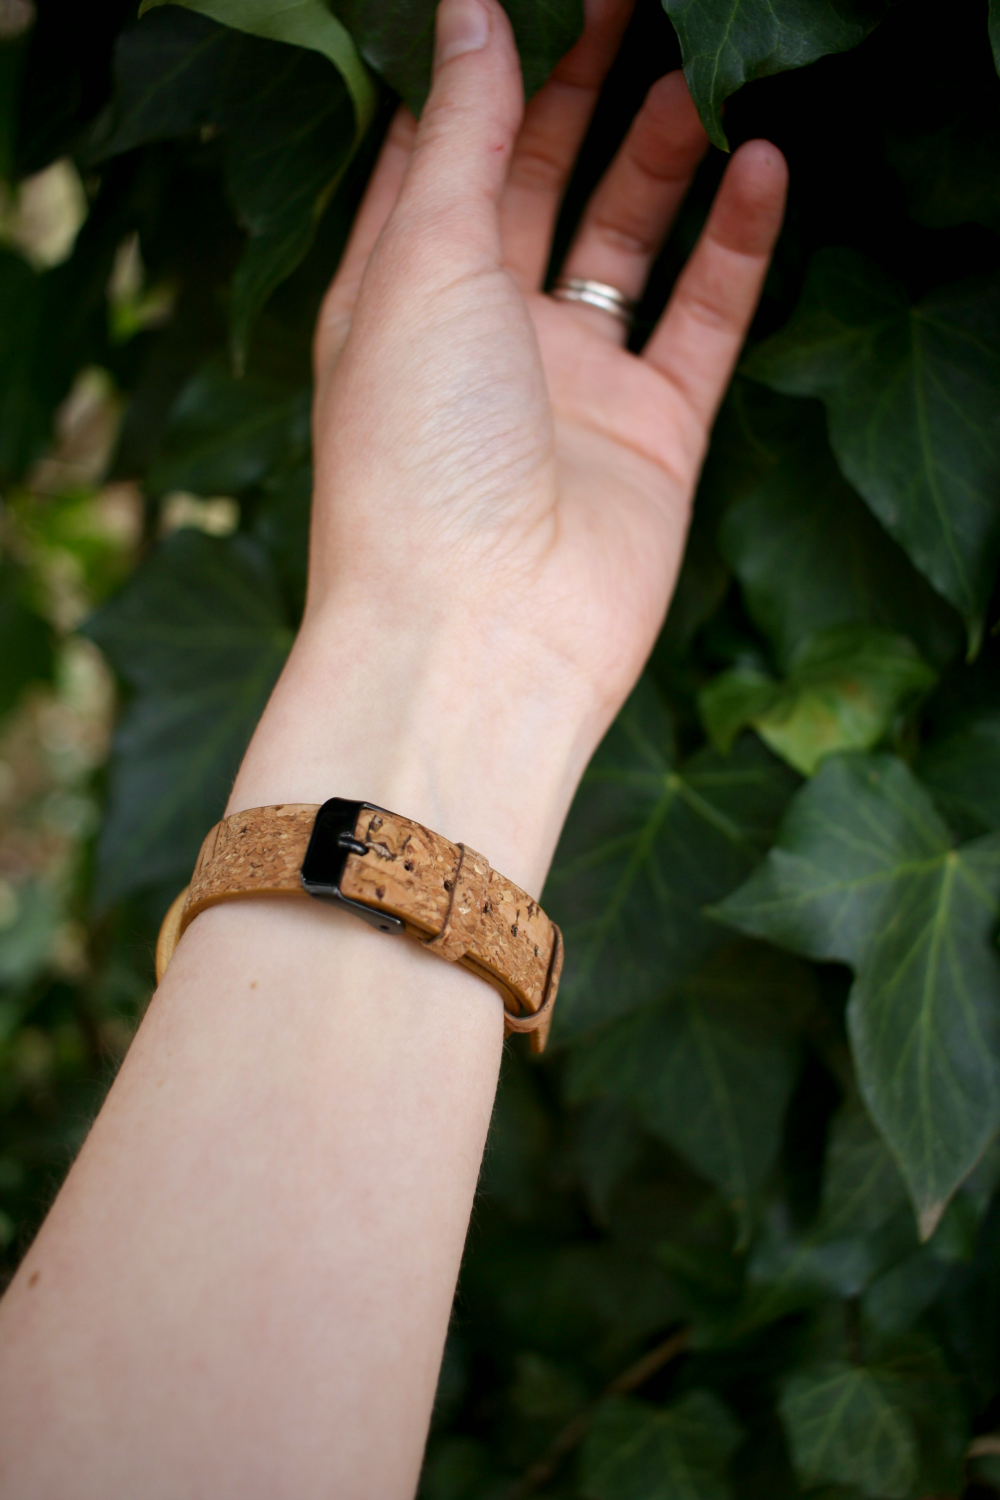 The Fourth Gentlemen Sustainable Bamboo and Cork Watch Review